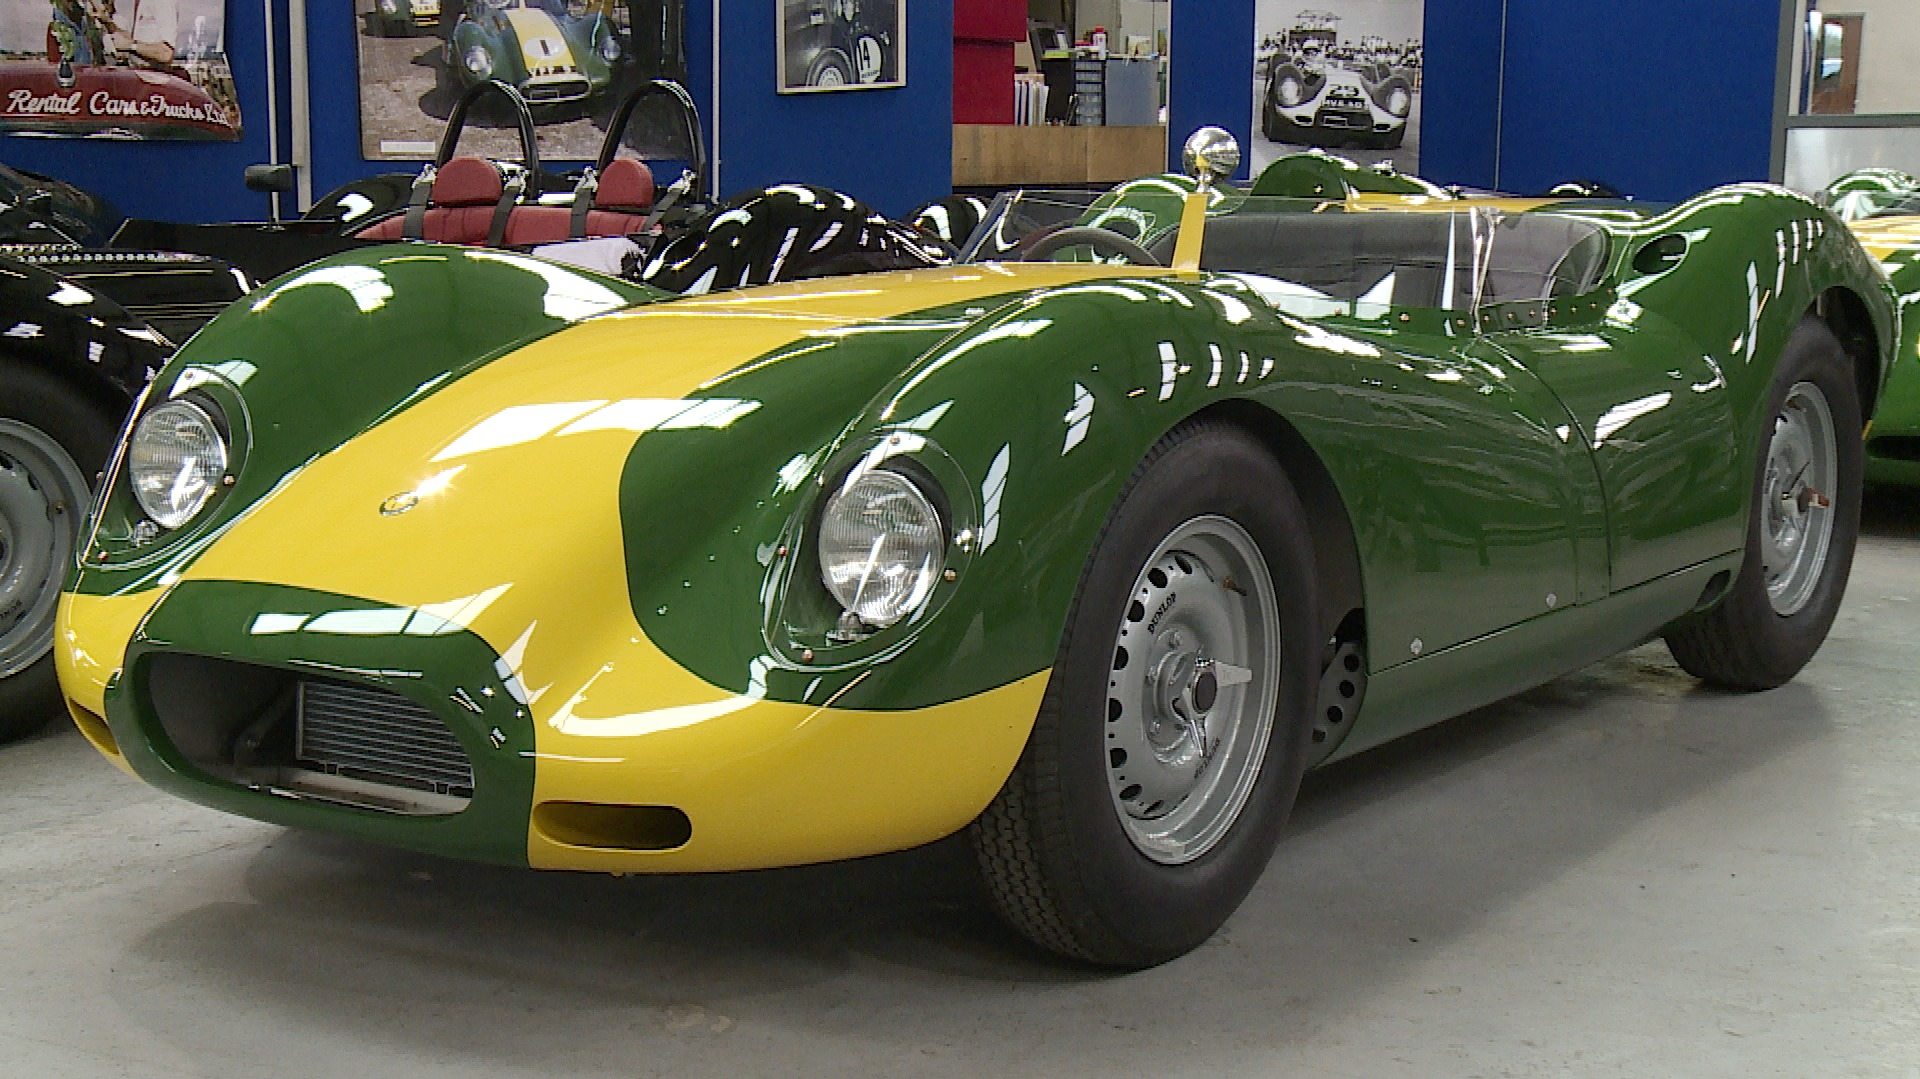 Body Central Sale >> Stirling Moss race car replicas on sale for £1 million | Anglia - ITV News